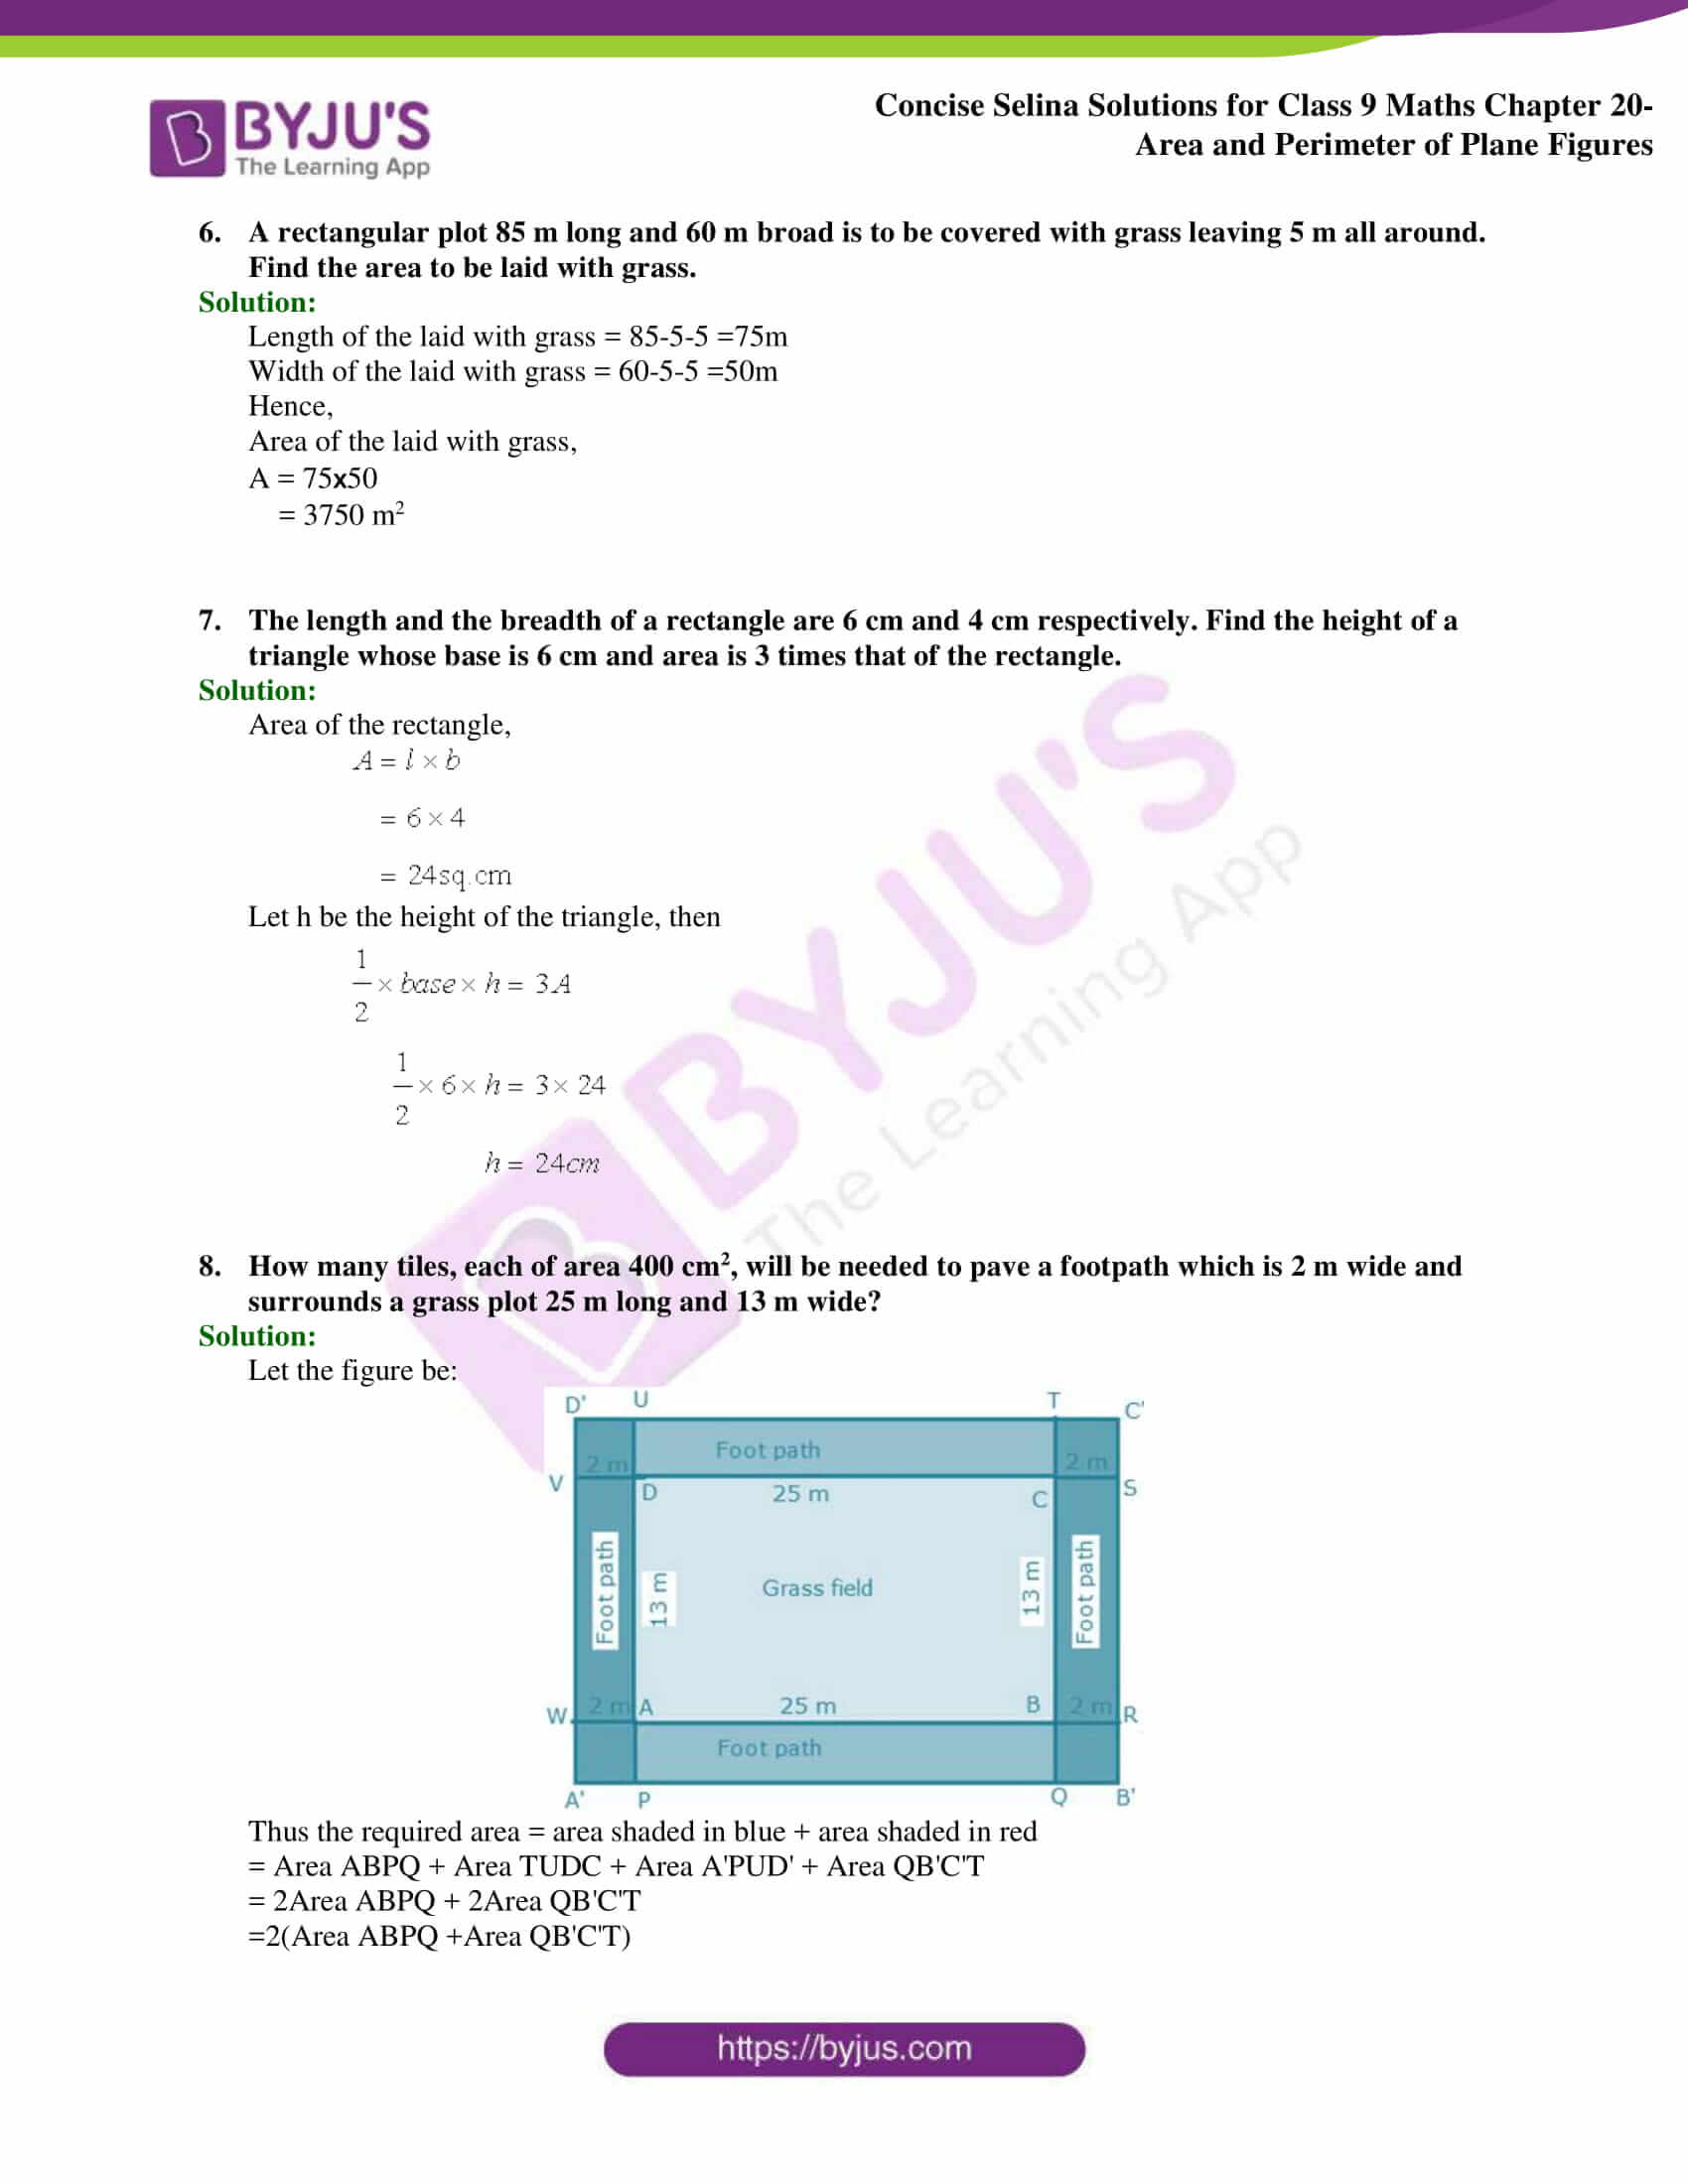 Concise Selina Solutions Class 9 Maths Chapter 20 Area and Perimeter of Plane part 14